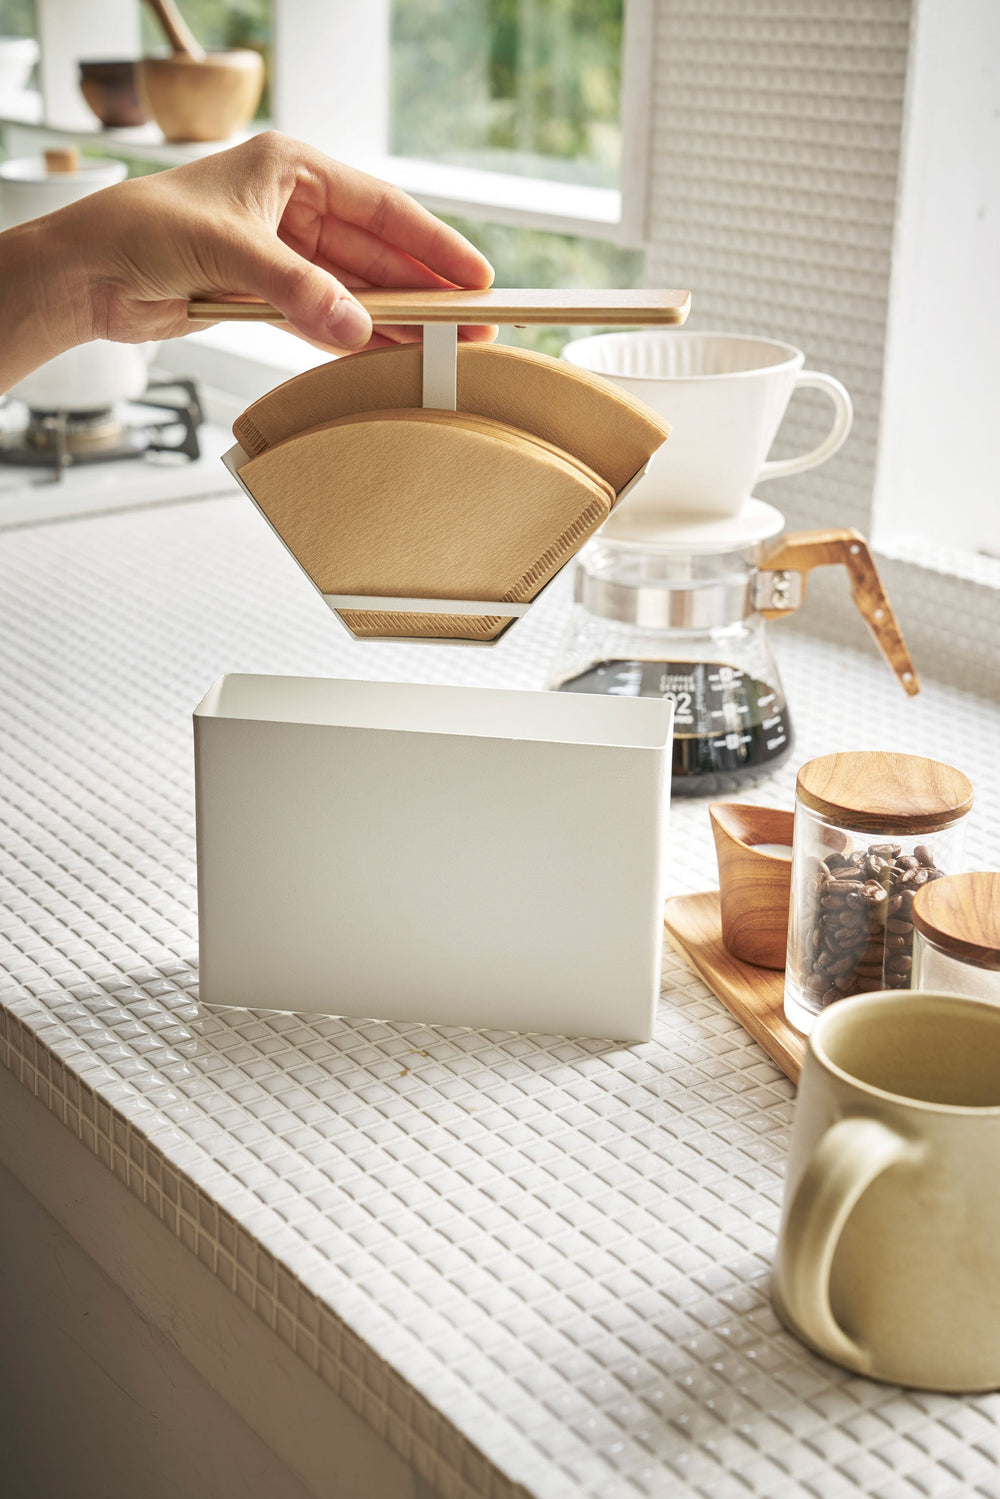 Person lifting the filters from the Yamazaki Coffee Filter Case as it sits on a countertop, surrounded by coffee making items